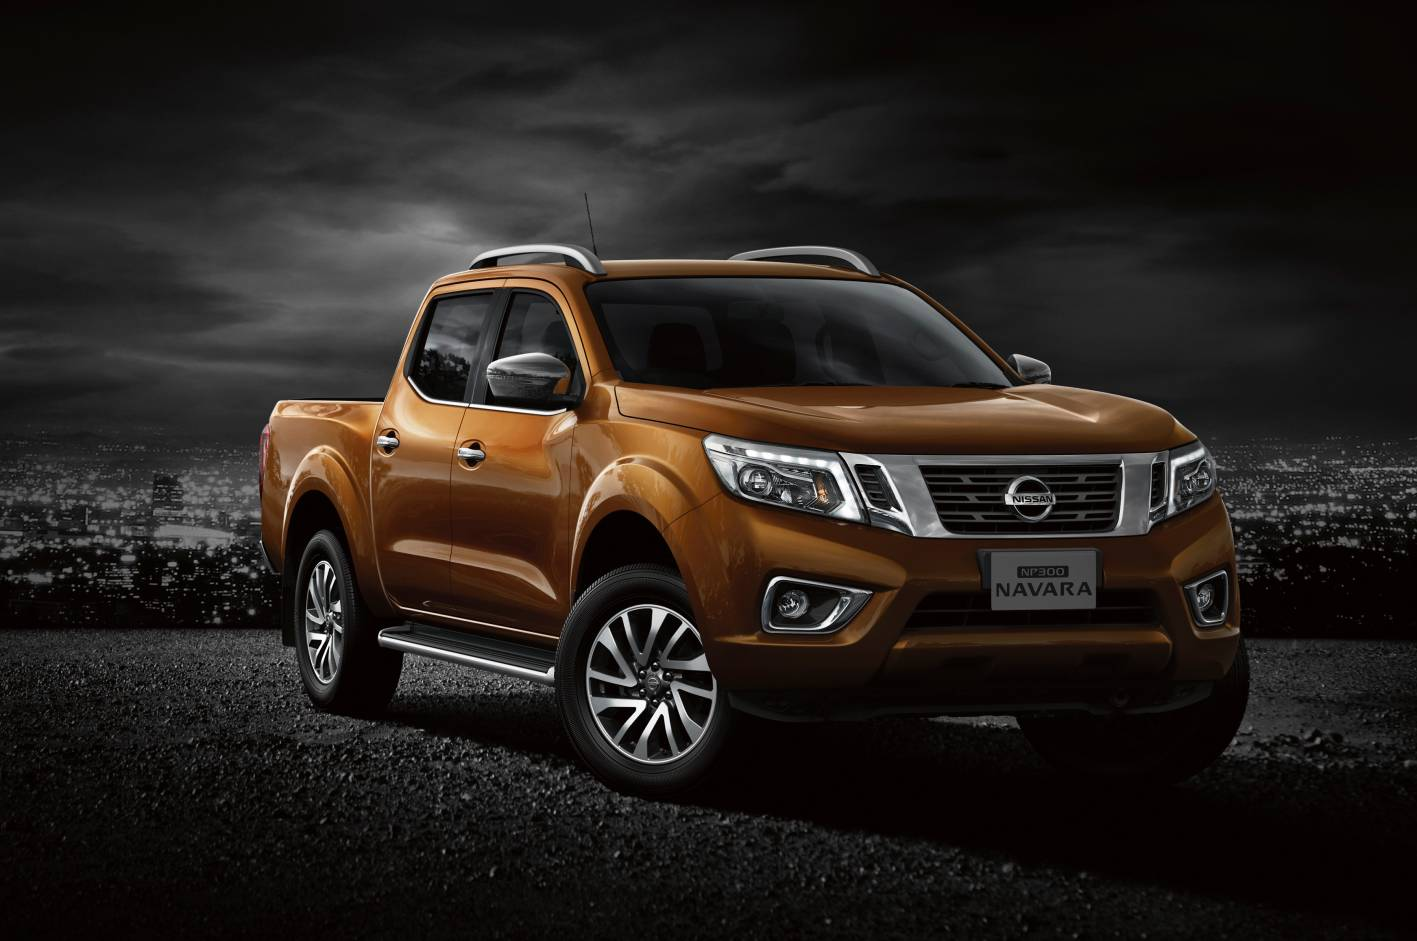 Nissan Cars - News: 2015 Navara pricing and specification